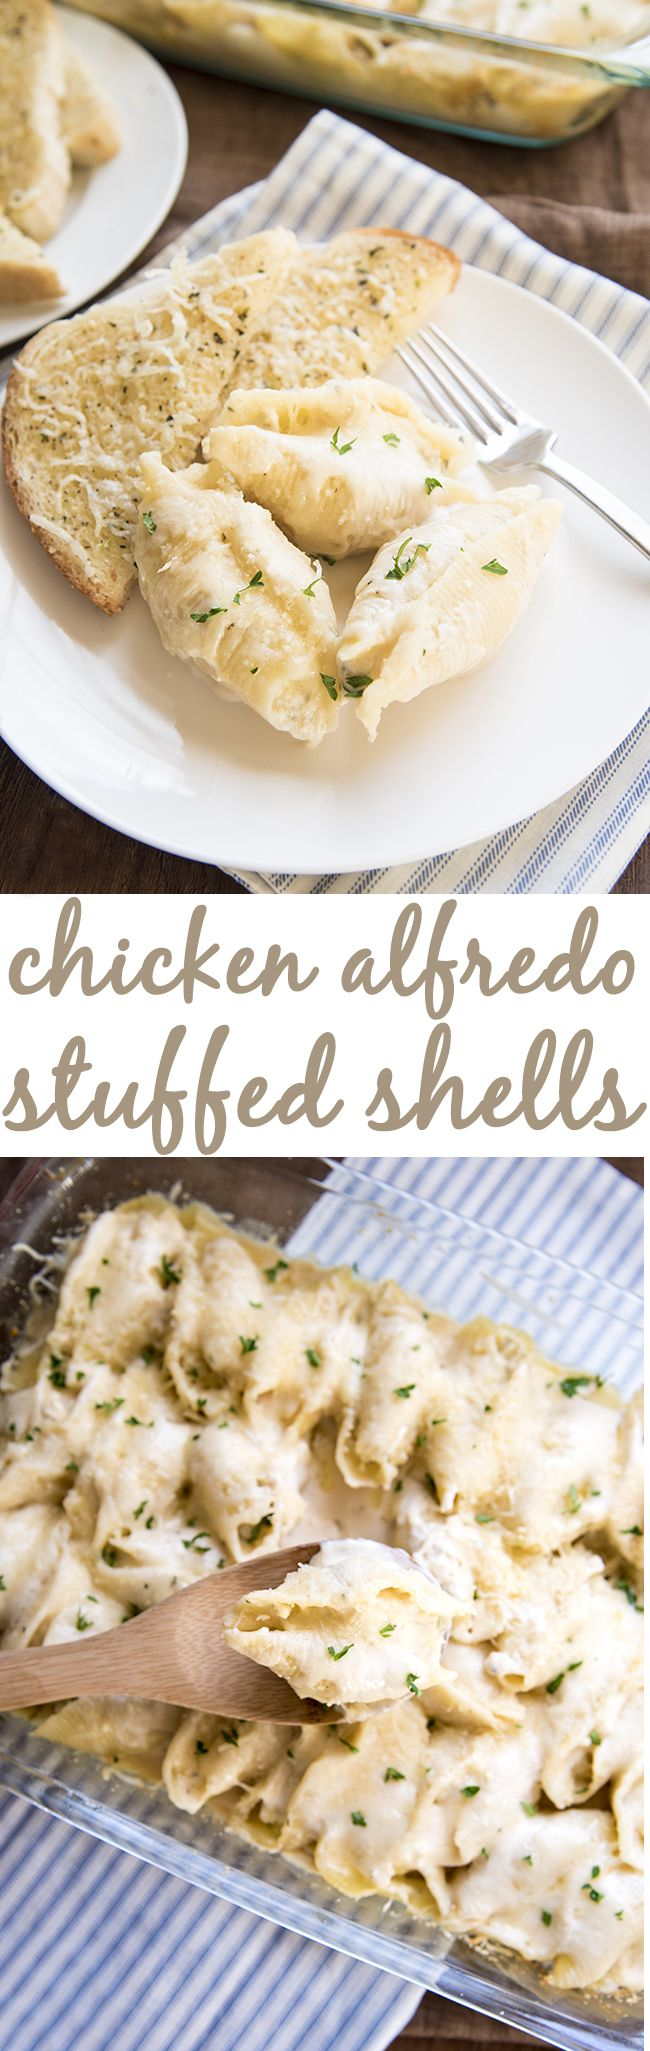 Chicken Alfredo Stuffed Shells - These delicious stuffed shells are filled with a creamy ricotta cheese, and shredded chicken mixture.